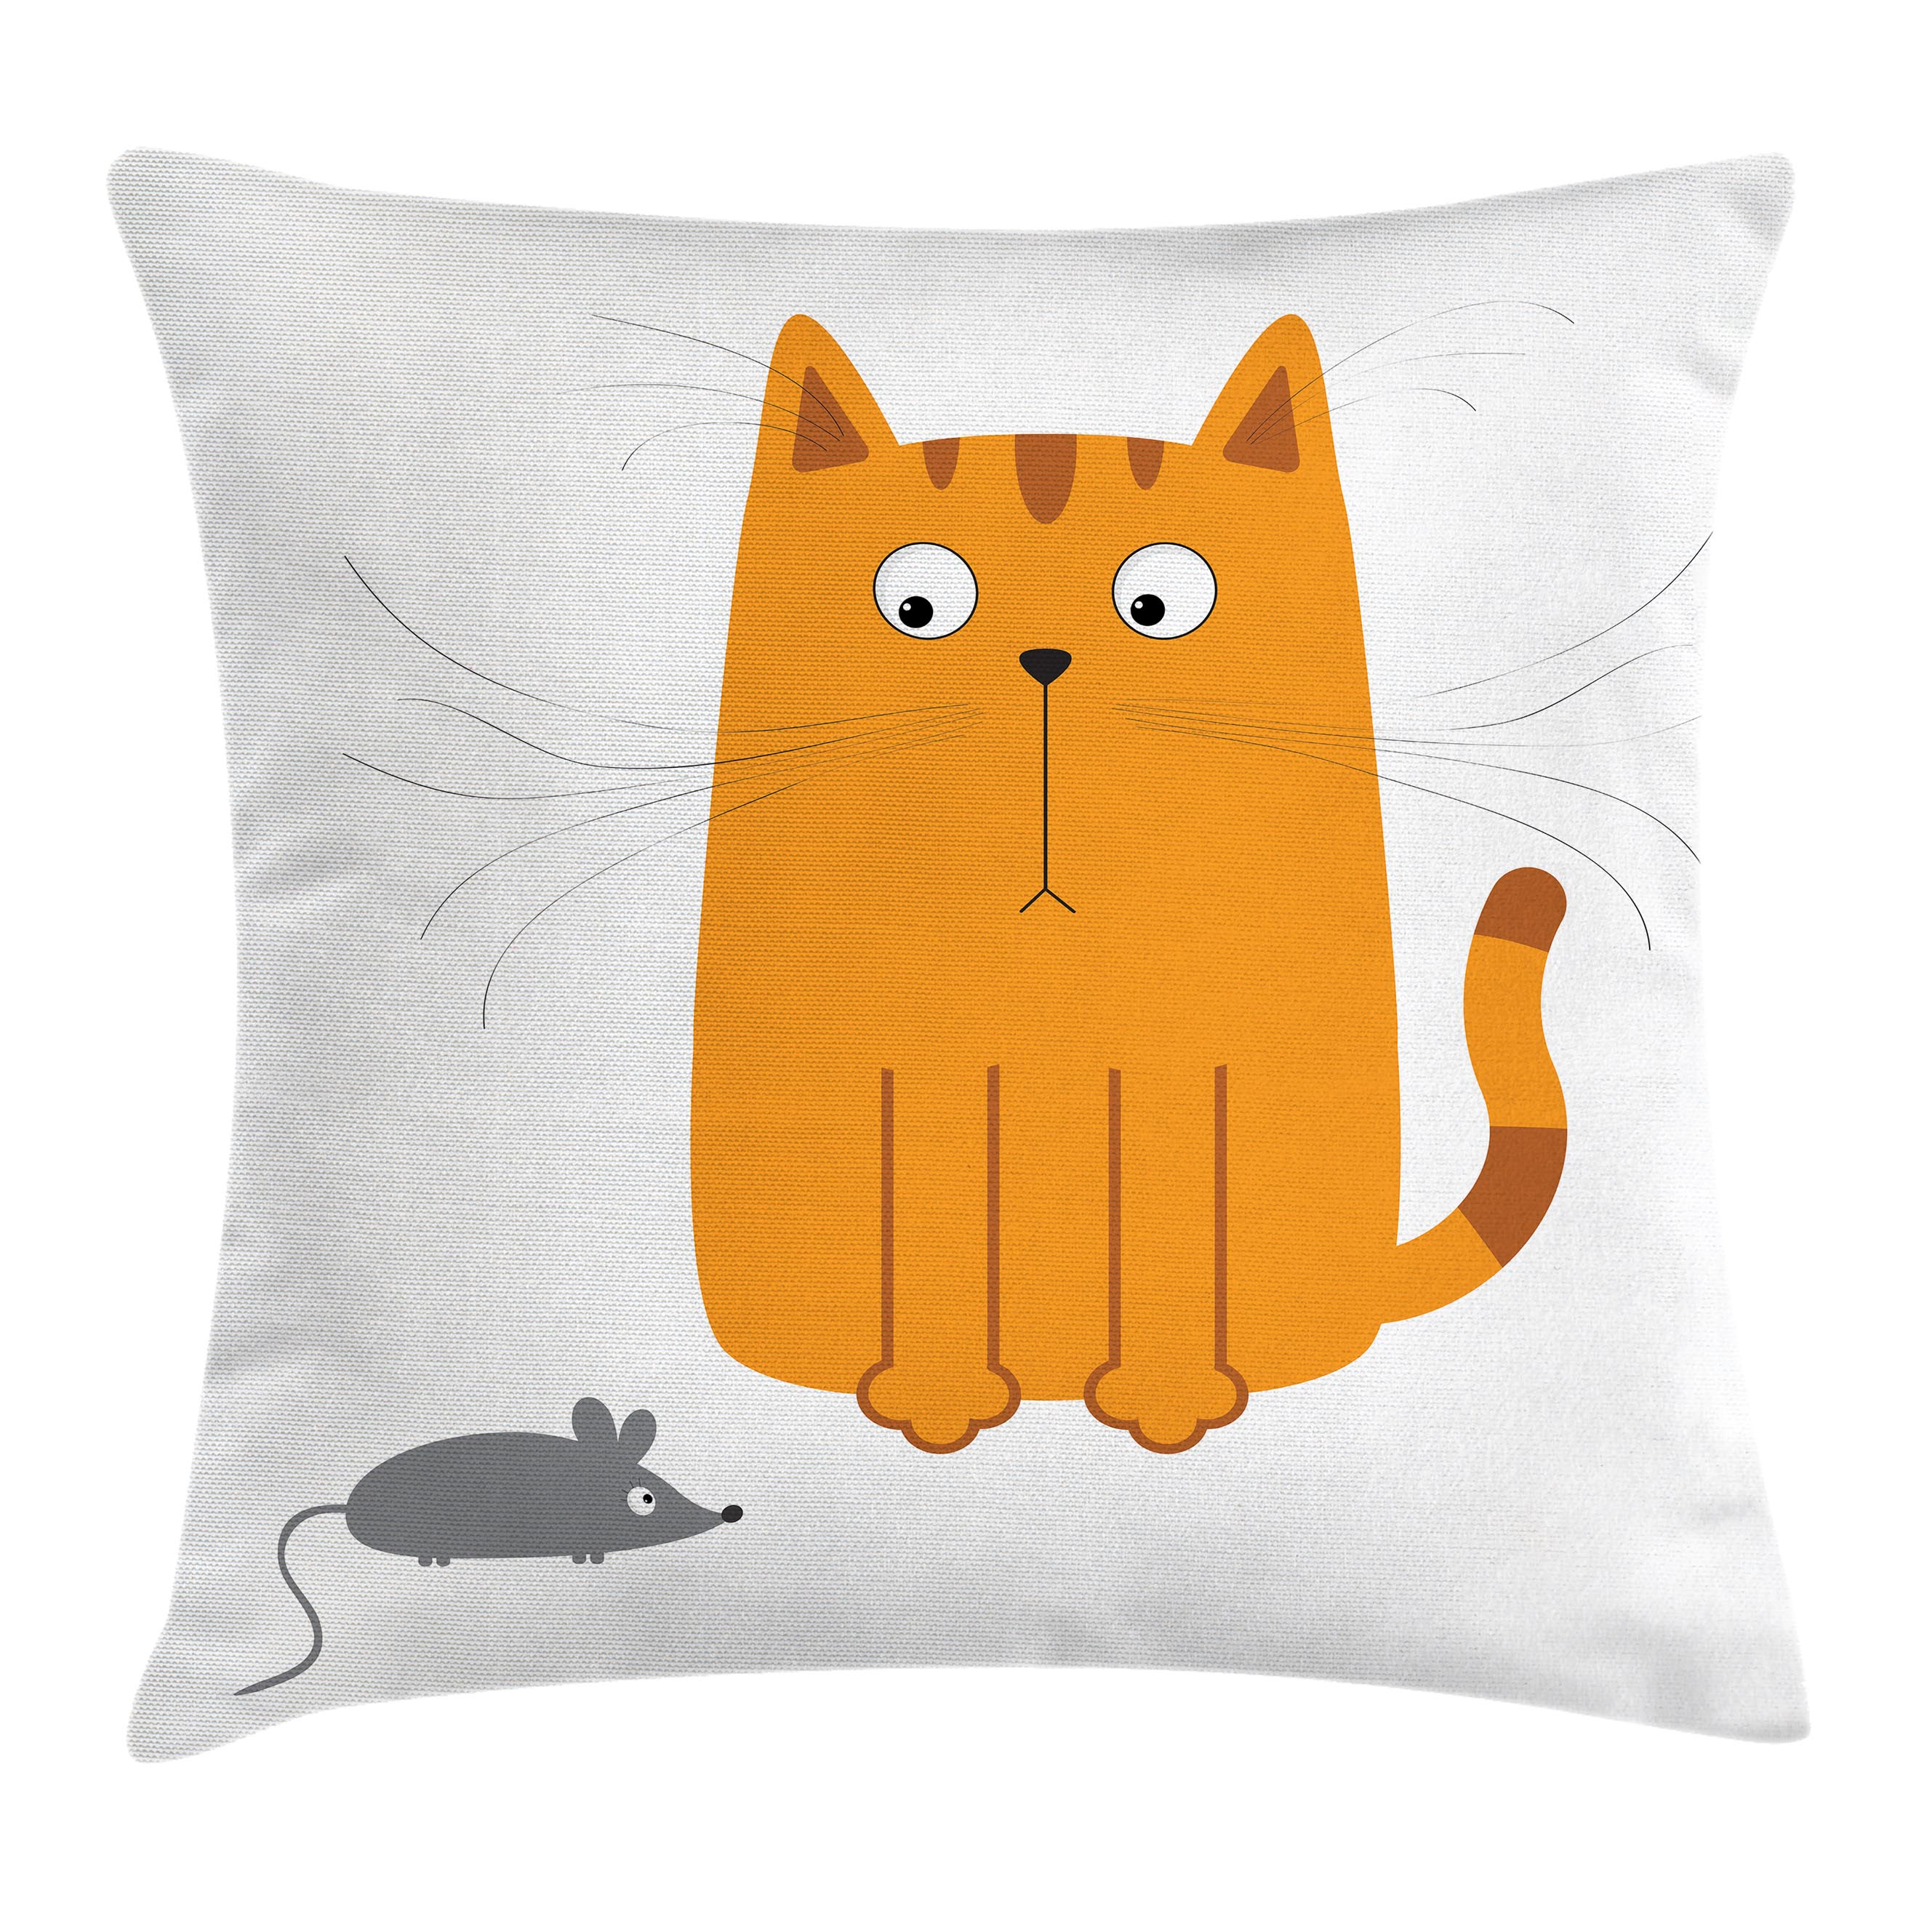 Cartoon Throw Pillow Cushion Cover, Cute Cat Looking at Mouse Hunter Kitty Fun Humor Kids Animal Graphic Art Print, Decorative Square Accent Pillow Case, 16 X 16 Inches, Marigold Grey, by Ambesonne